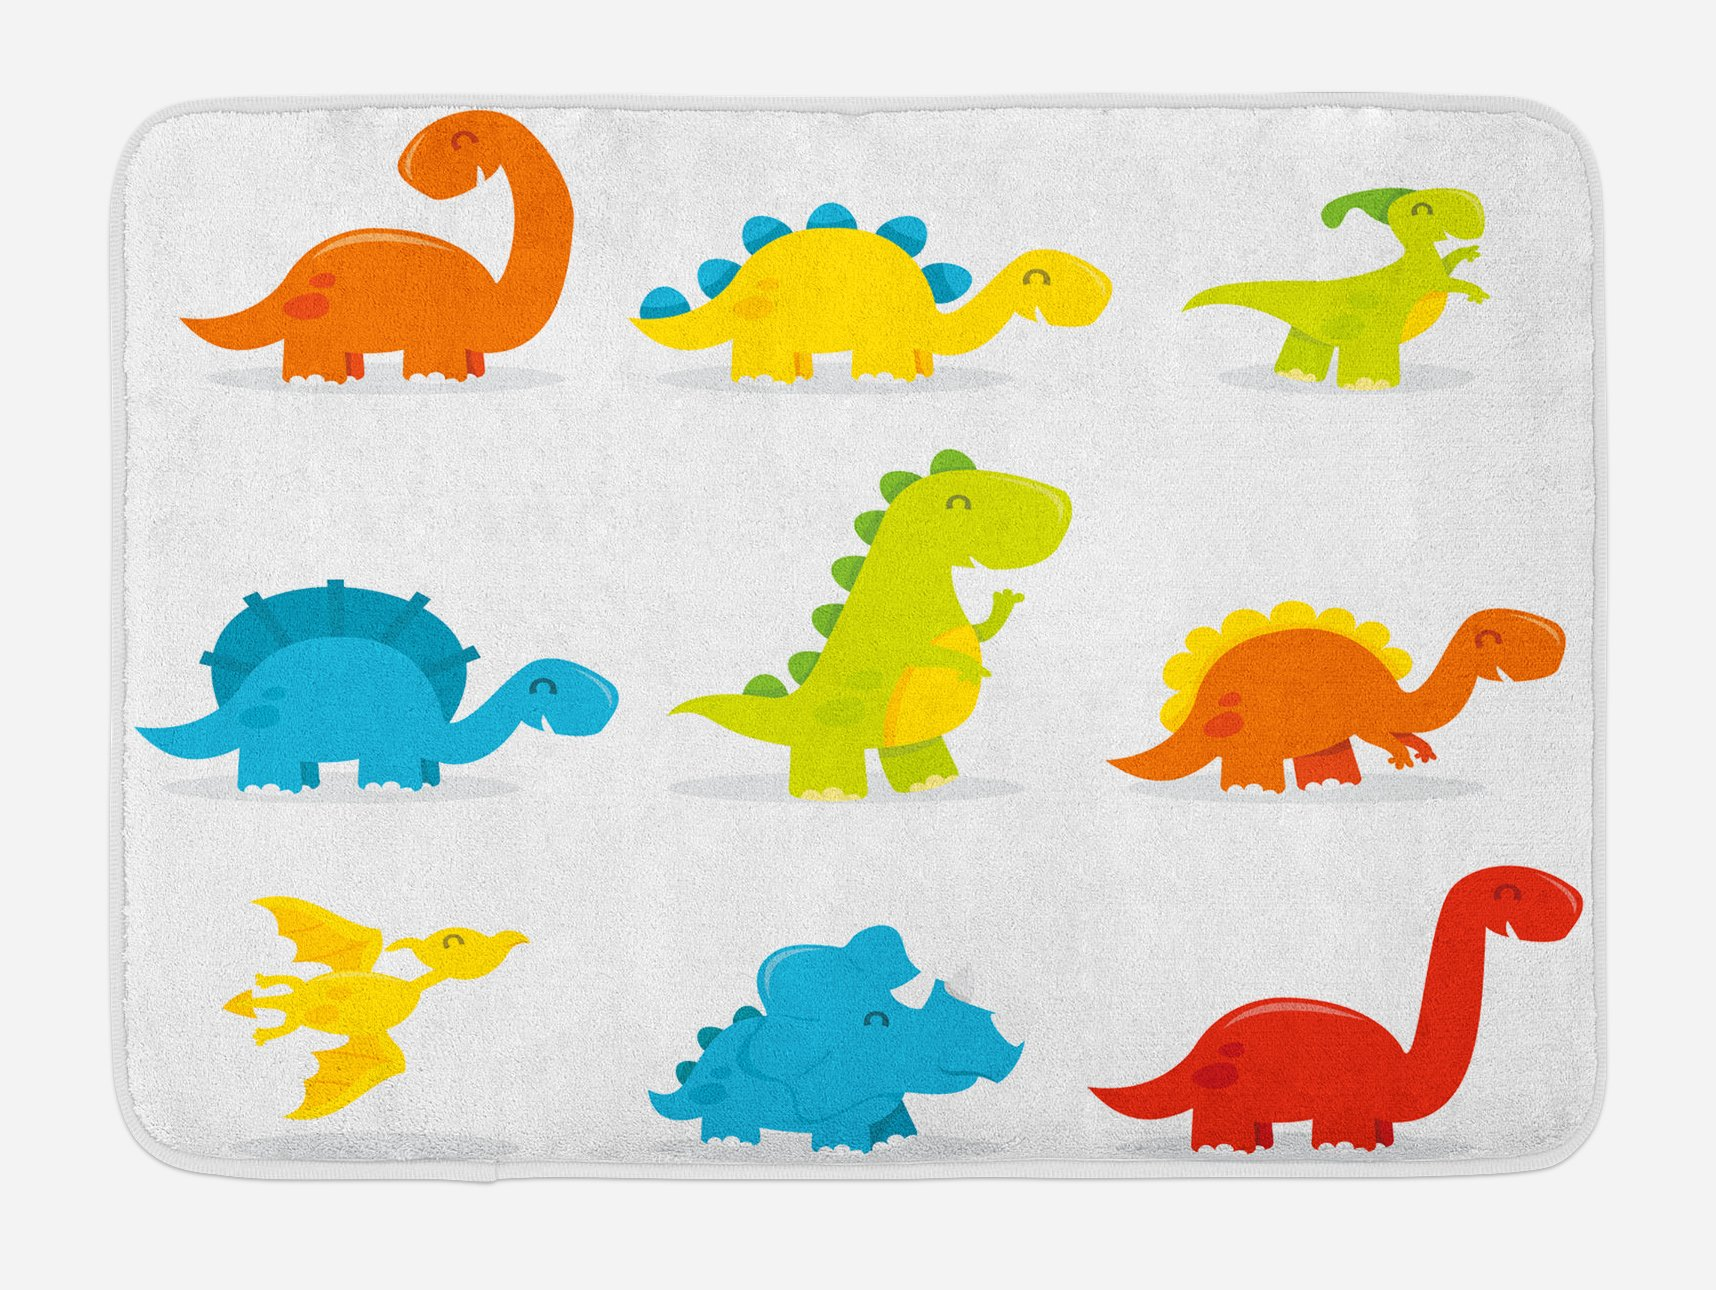 Ambesonne Dinosaur Bath Mat, Cute and Funny Dinosaurs Set Cartoon Style Colorful Collection Kids Nursery Theme, Plush Bathroom Decor Mat with Non Slip Backing, 29.5 W X 17.5 W Inches, Multicolor